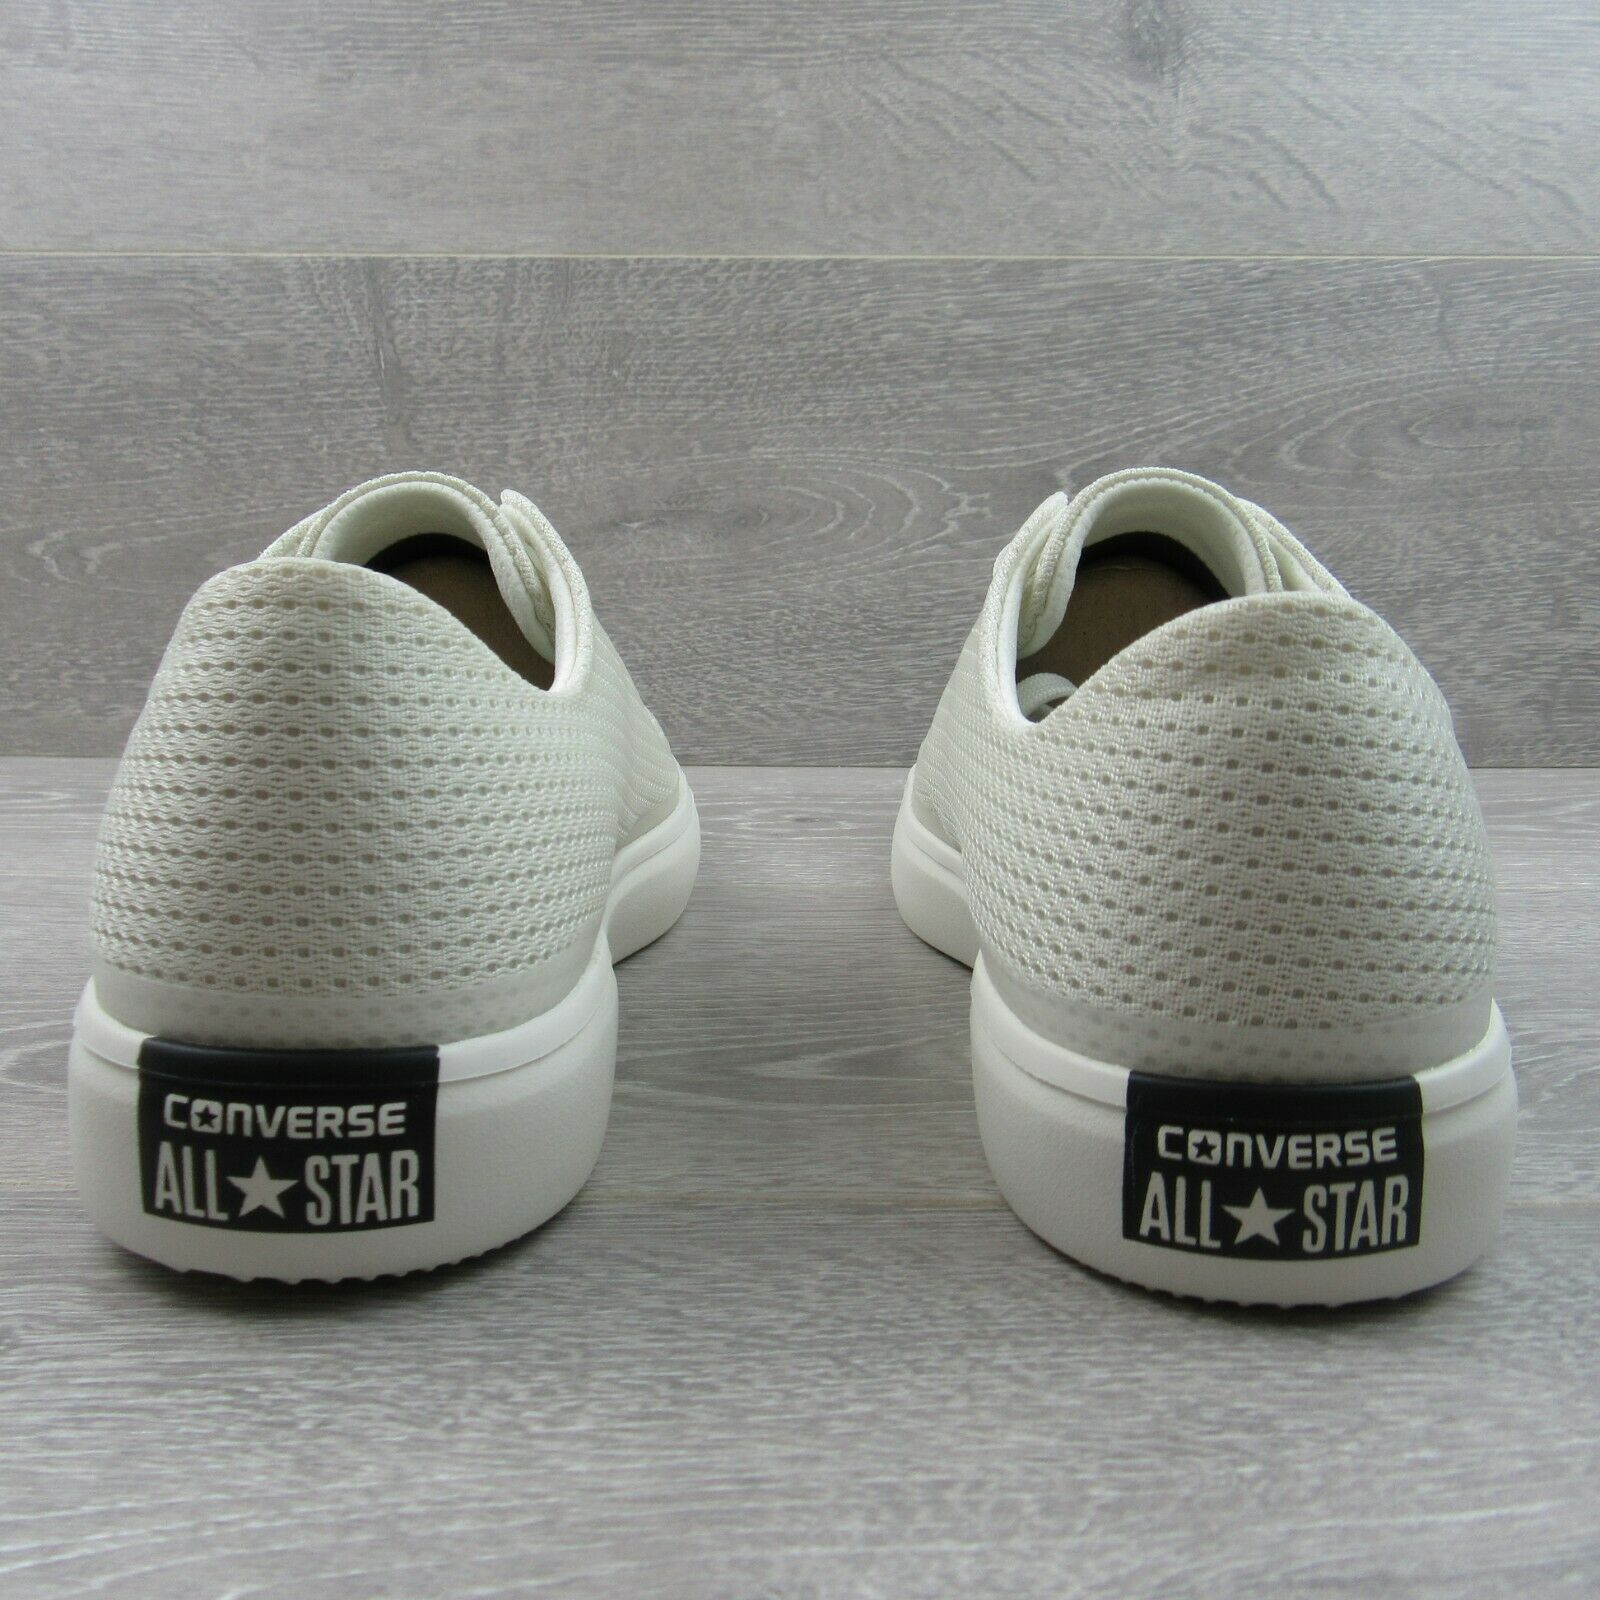 Converse CTAS Modern OX Buff White Shoes Size 9.5 Mens NEW 156652C image 6